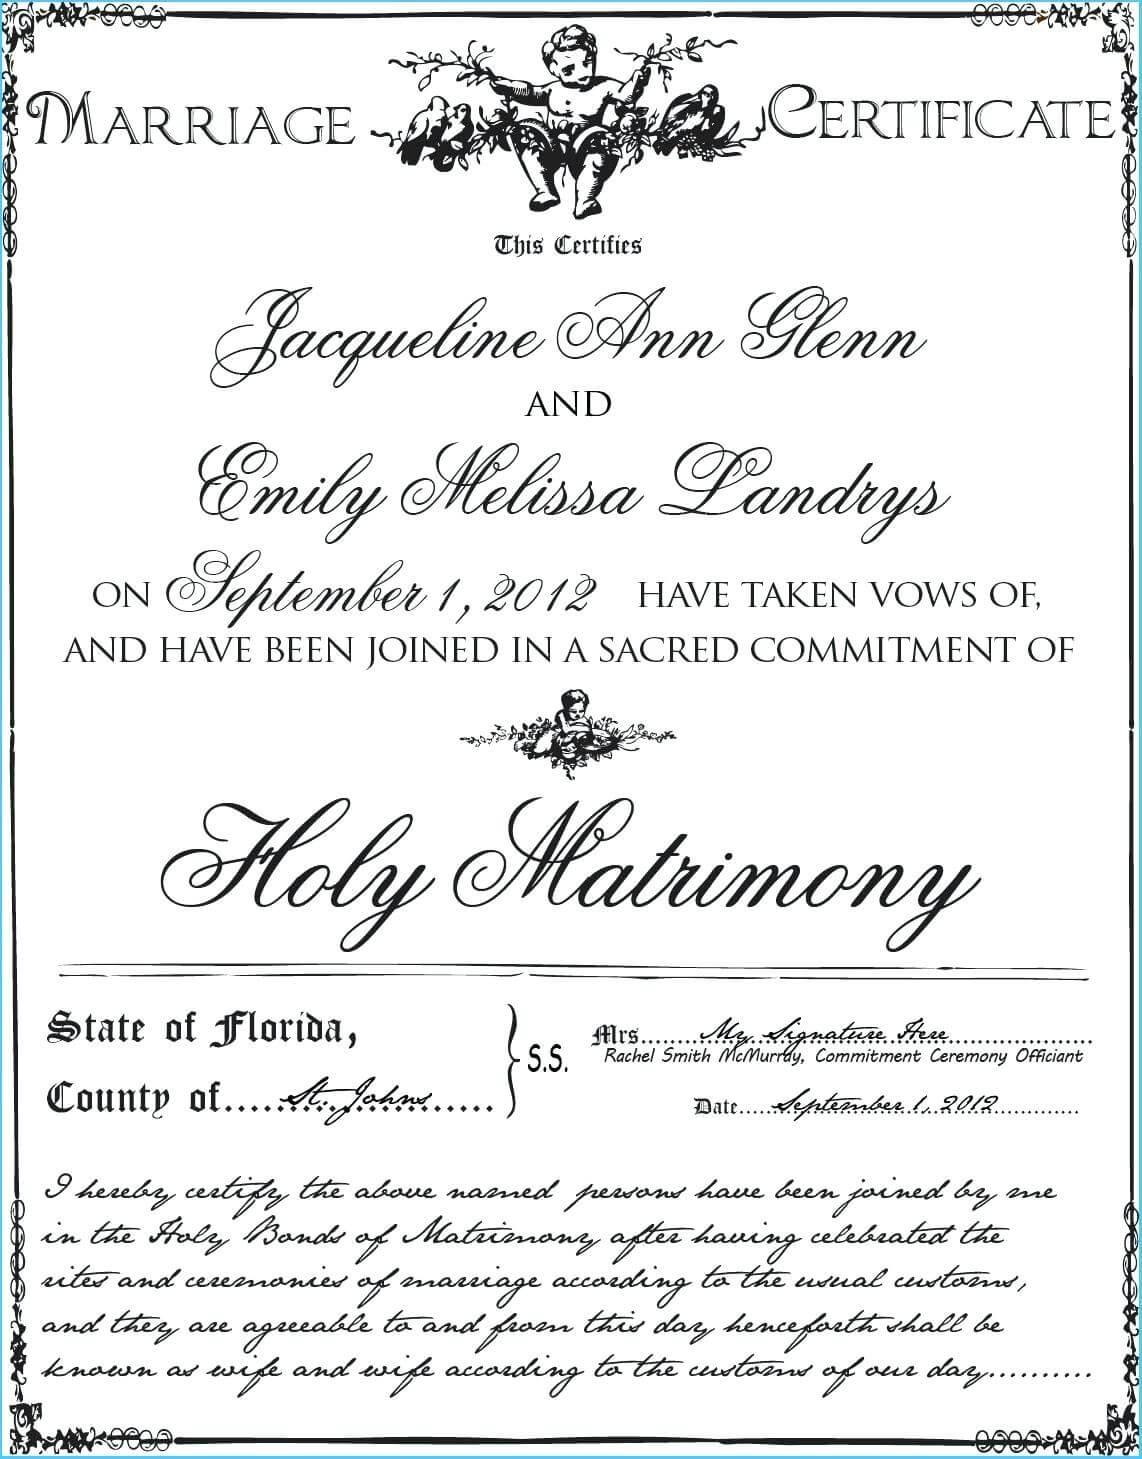 Blank Marriage Certificate Template – Uppage.co Regarding Blank Marriage Certificate Template